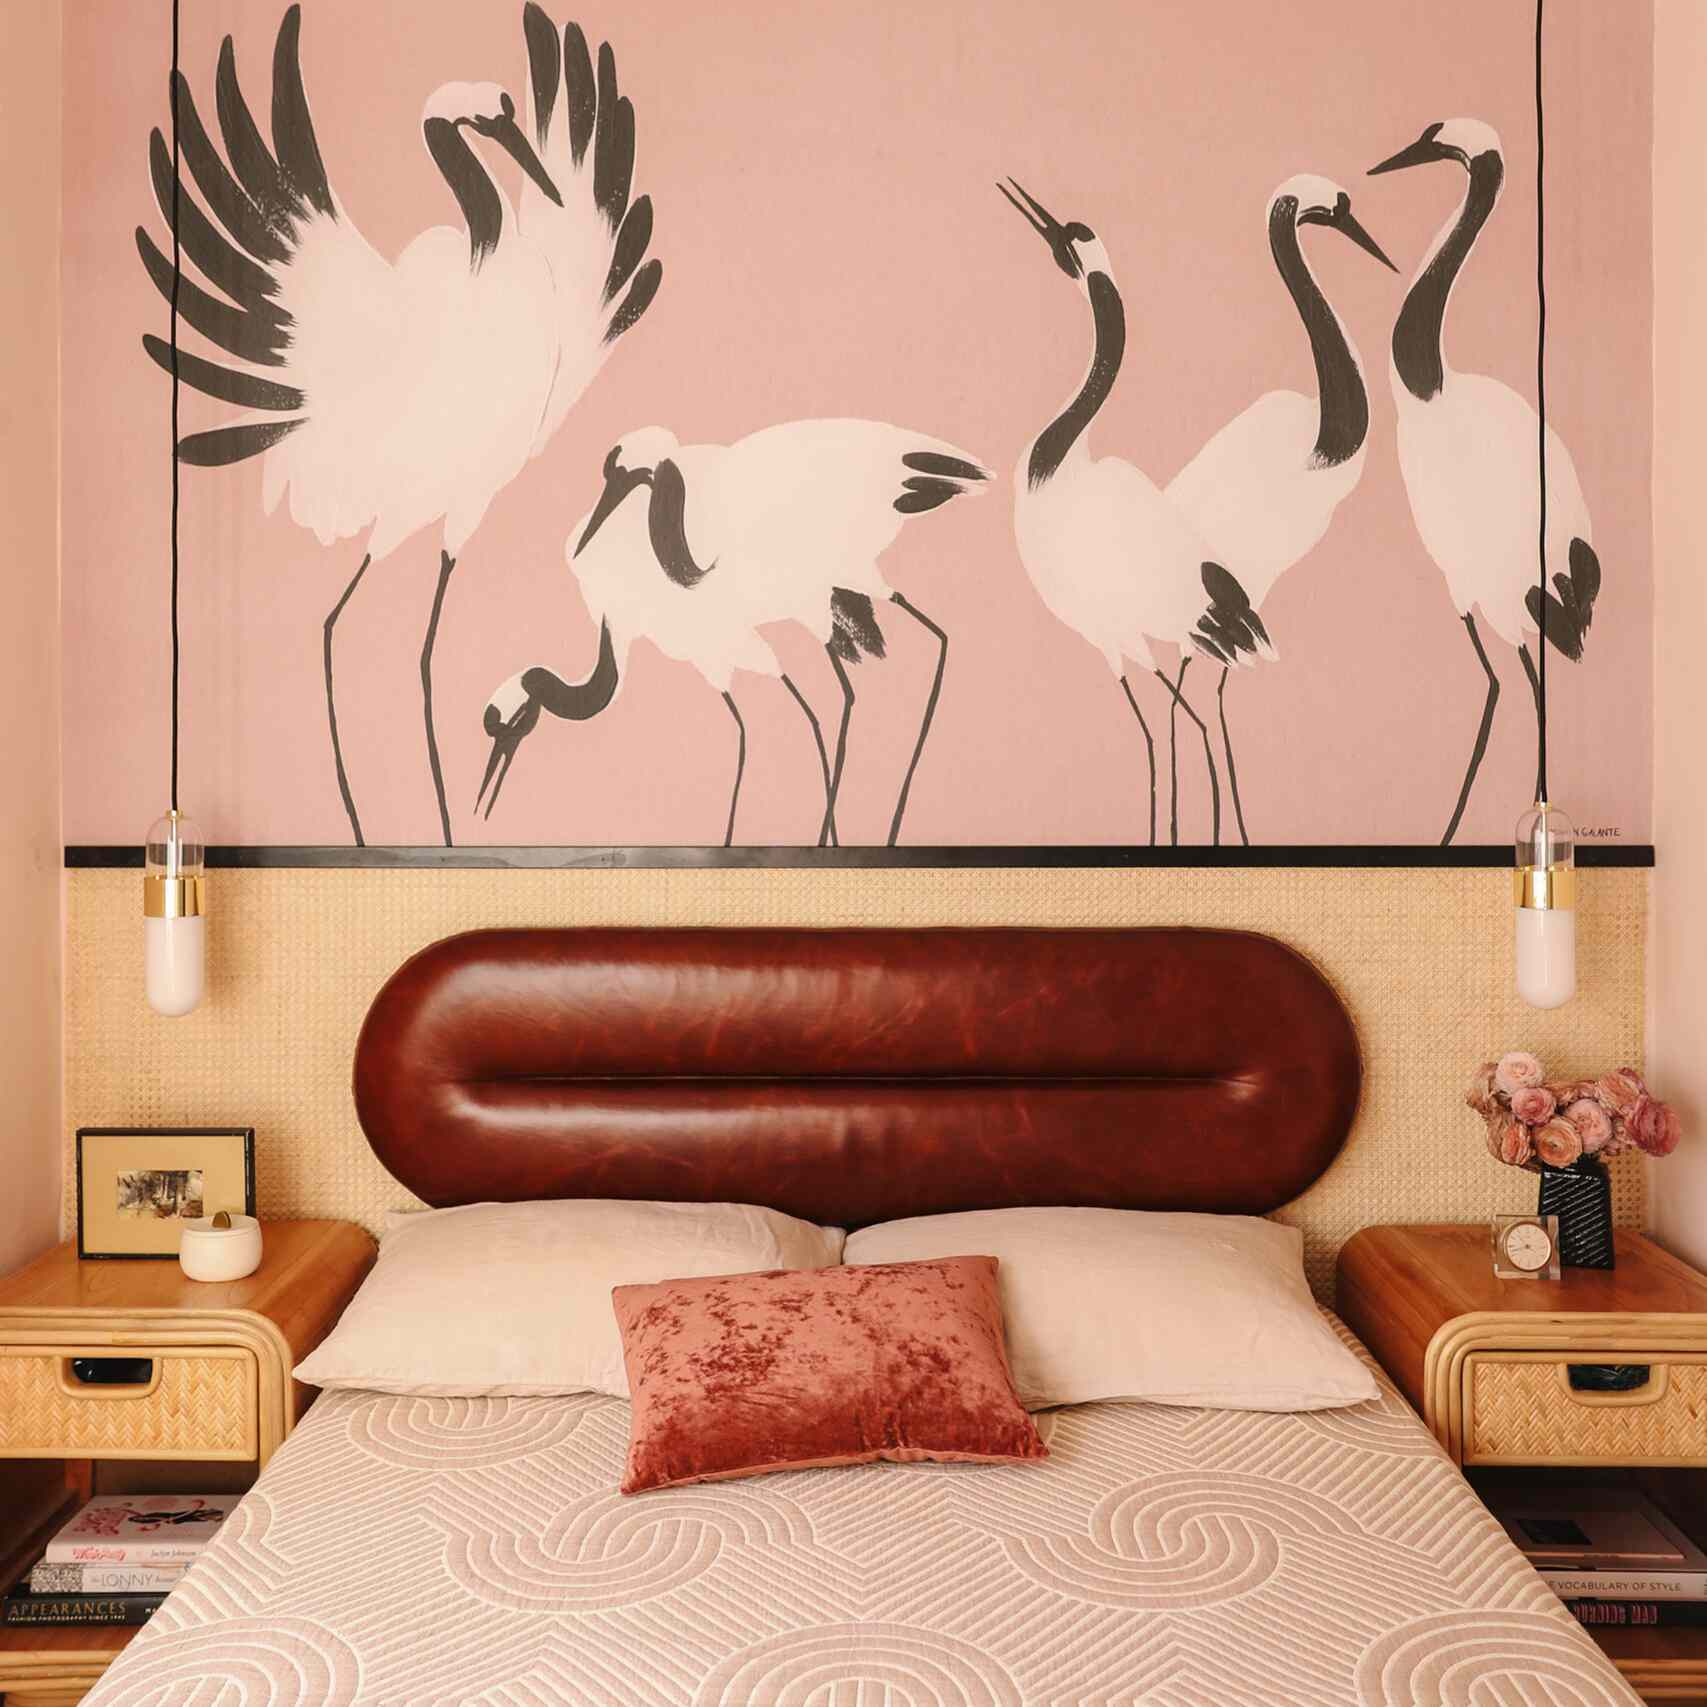 bedtoom with crane mural and leather oval headboard